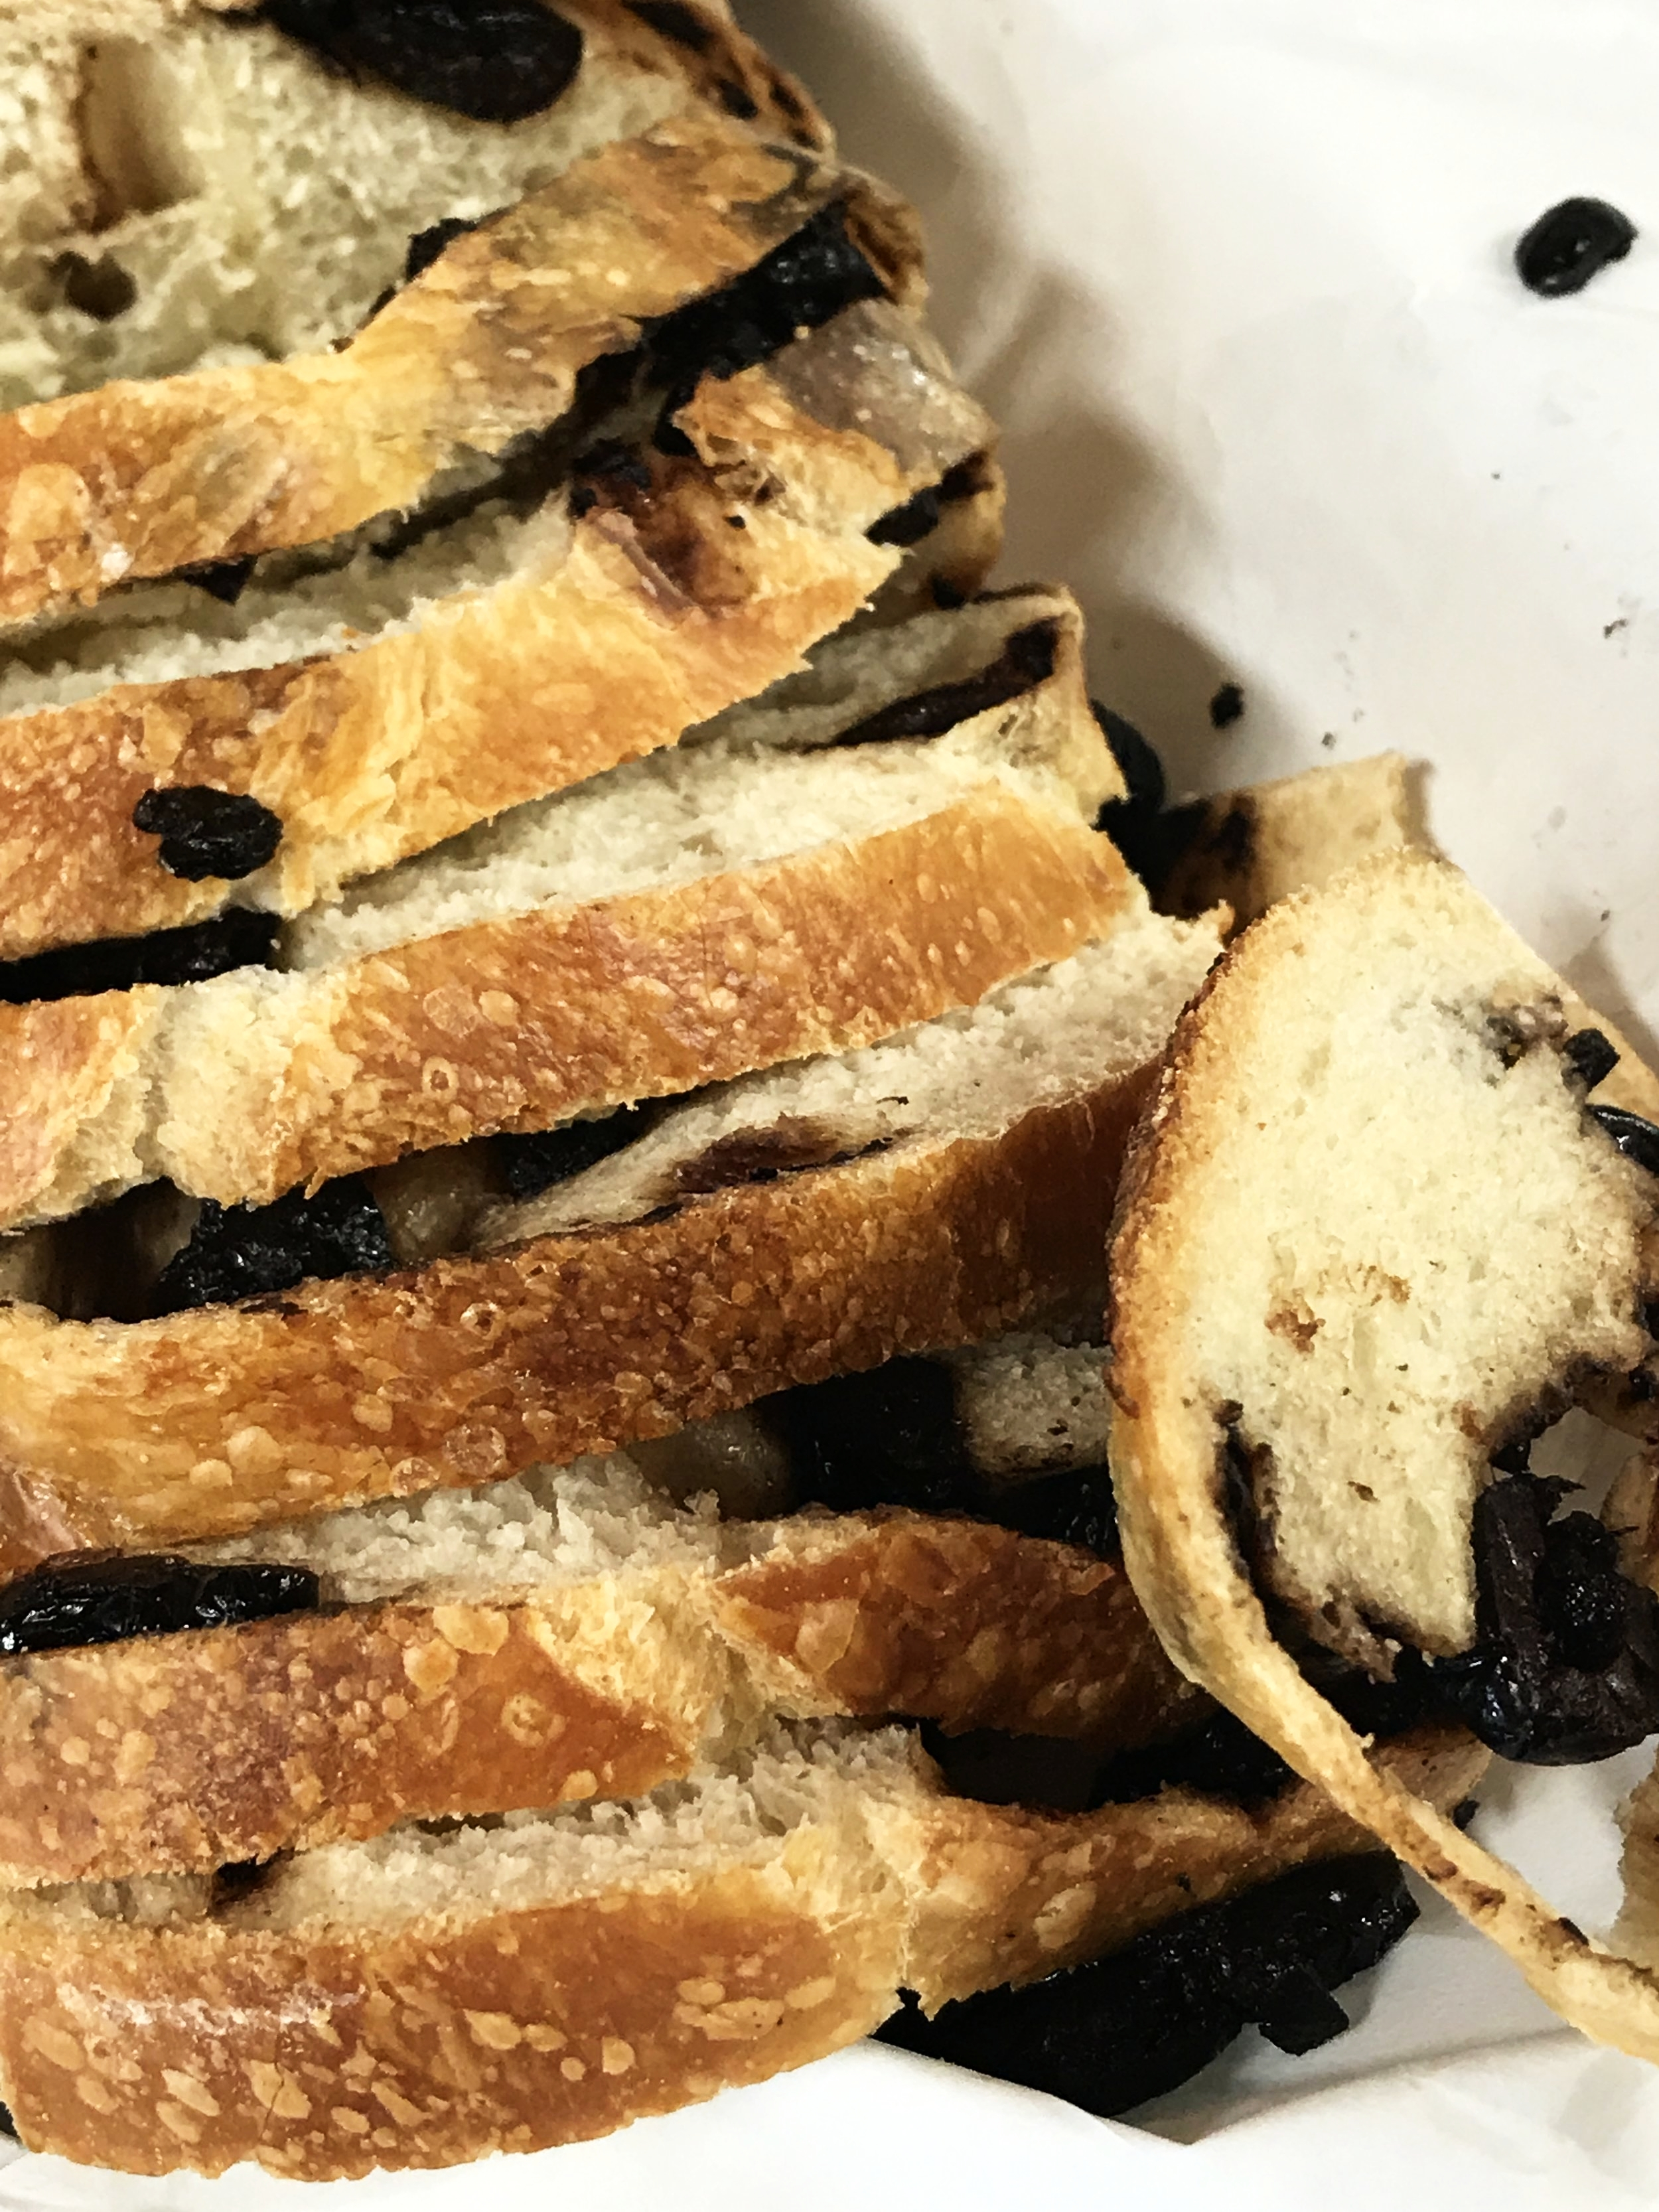 Olive bread, the specialty of Madonia Bakery.